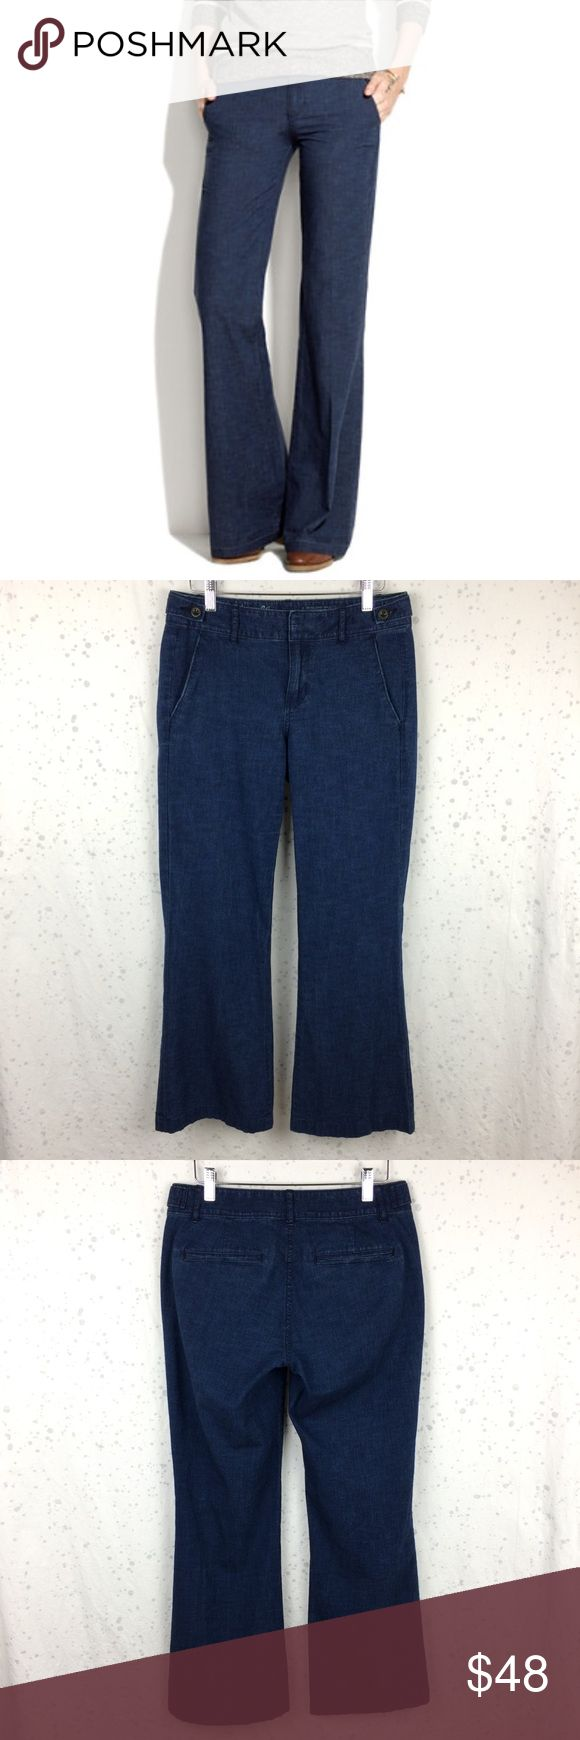 "Madewell Widelegger Lightweight Jeans 27 Madewell Widelegger Jeans, size 27. Very good condition-little to no wear. Approximate measurements: 29.5"" inseam, 15"" waist measured flat, 9"" rise. Lightweight denim, 100% cotton. Madewell Jeans Flare & Wide Leg"